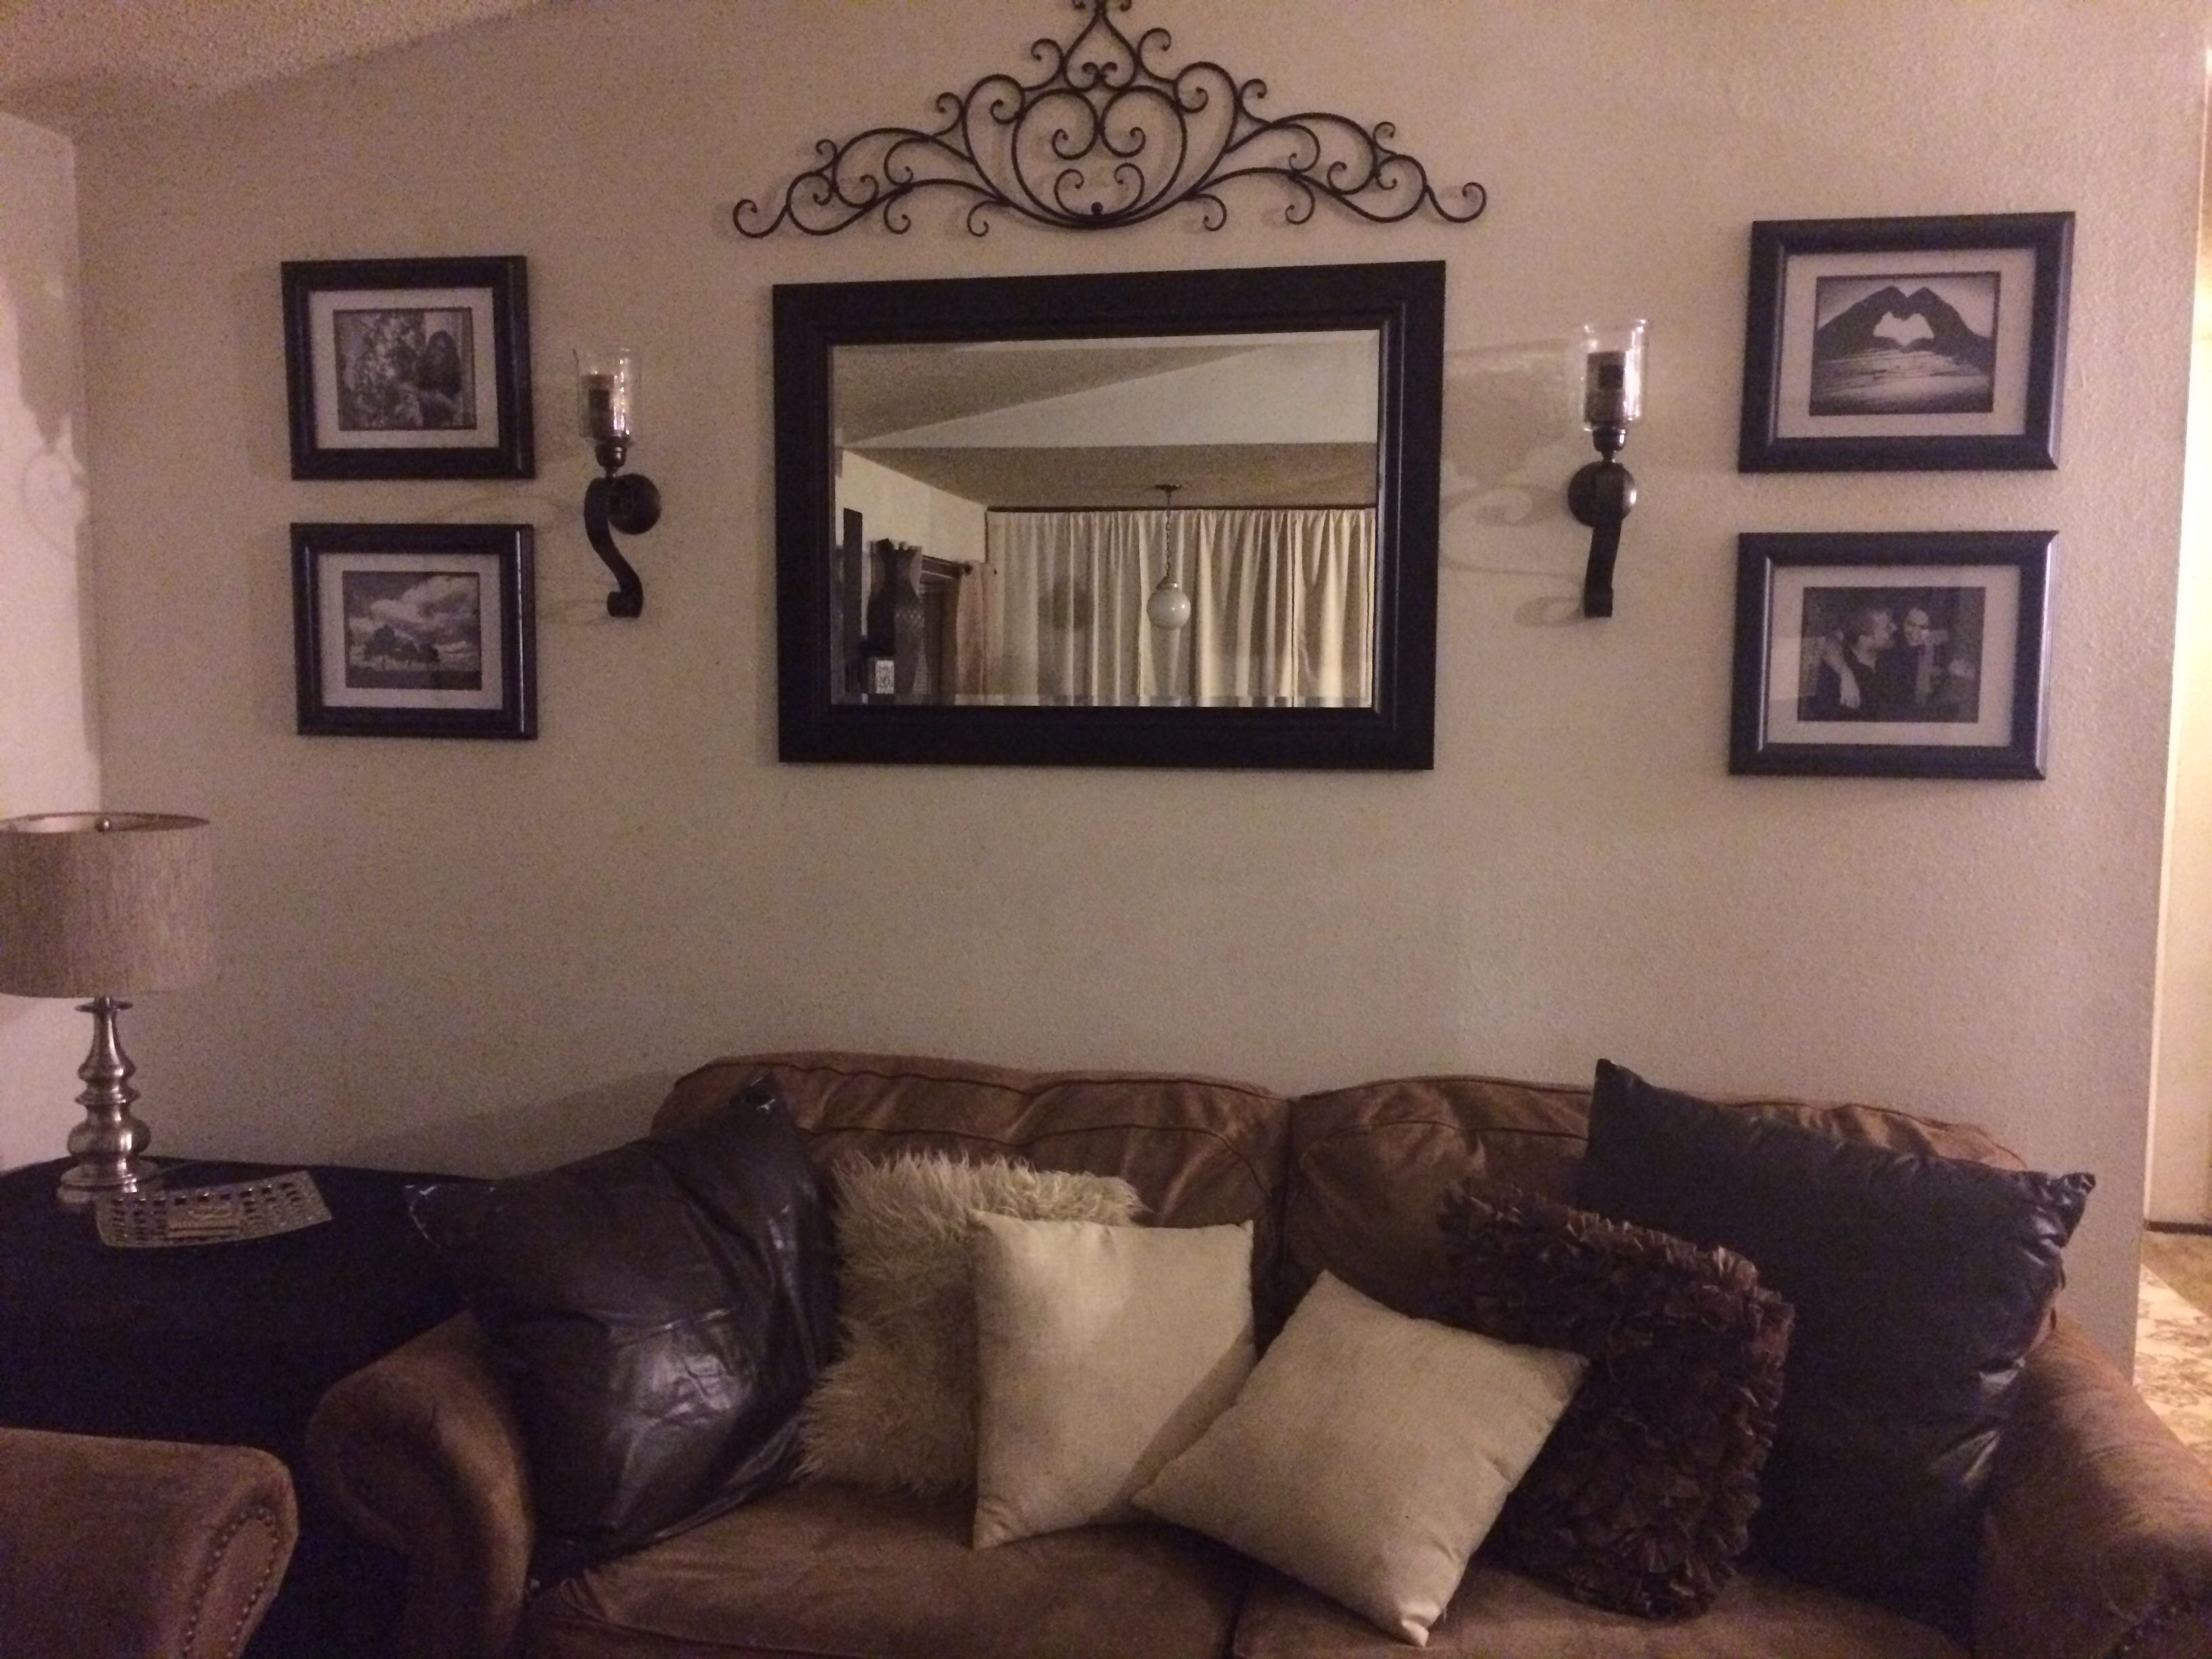 Upper middle class living room - Behind Couch Wall In Living Room Mirror Frame Sconces And Metal Decor